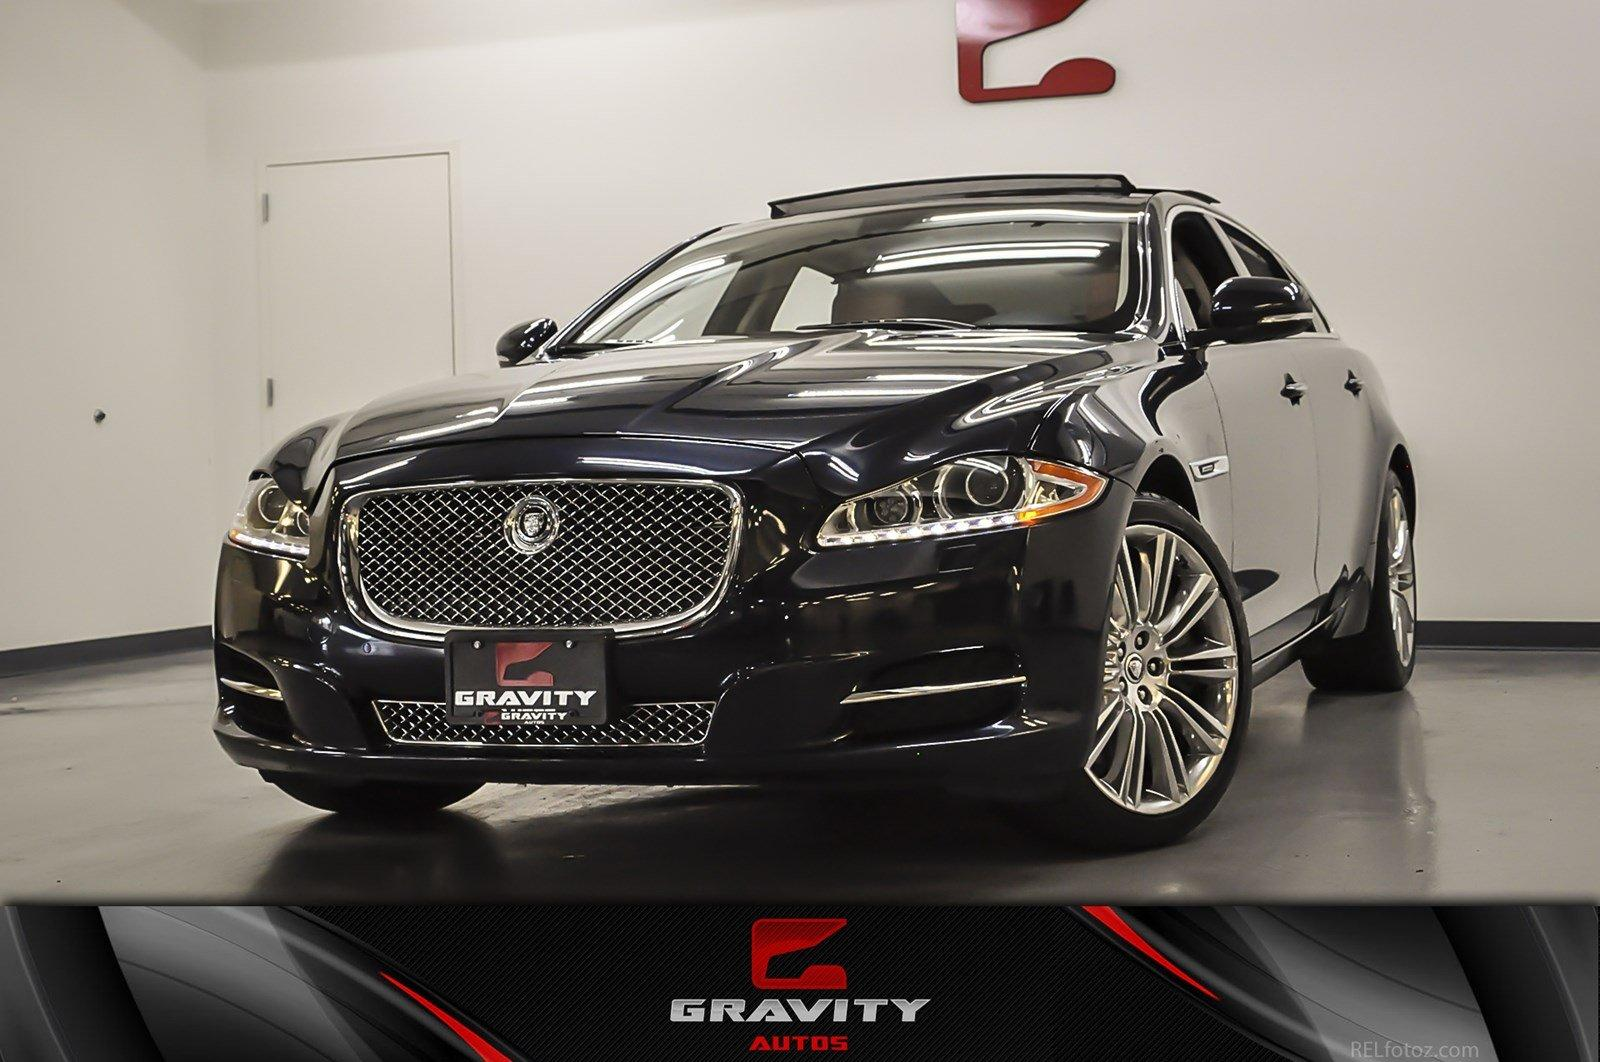 2011 Jaguar Xj Xjl Supercharged Stock V06859 For Sale Near Marietta Ga Ga Jaguar Dealer